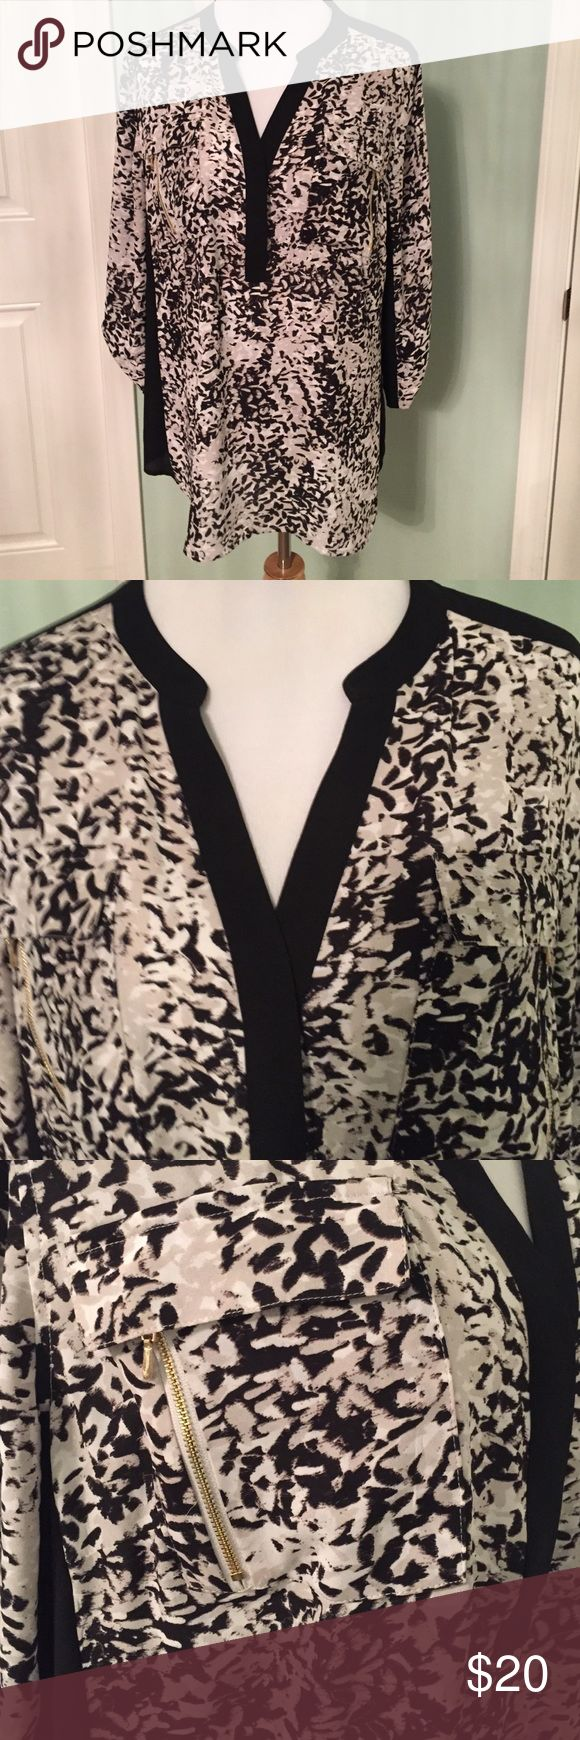 Layne Bryant Size 18/20 -Like New Blouse! So cute! Like New! Black, white, and gray. Lightweight and flows really nicely. Zipper accents. Size 18/20 Lane Bryant Tops Blouses